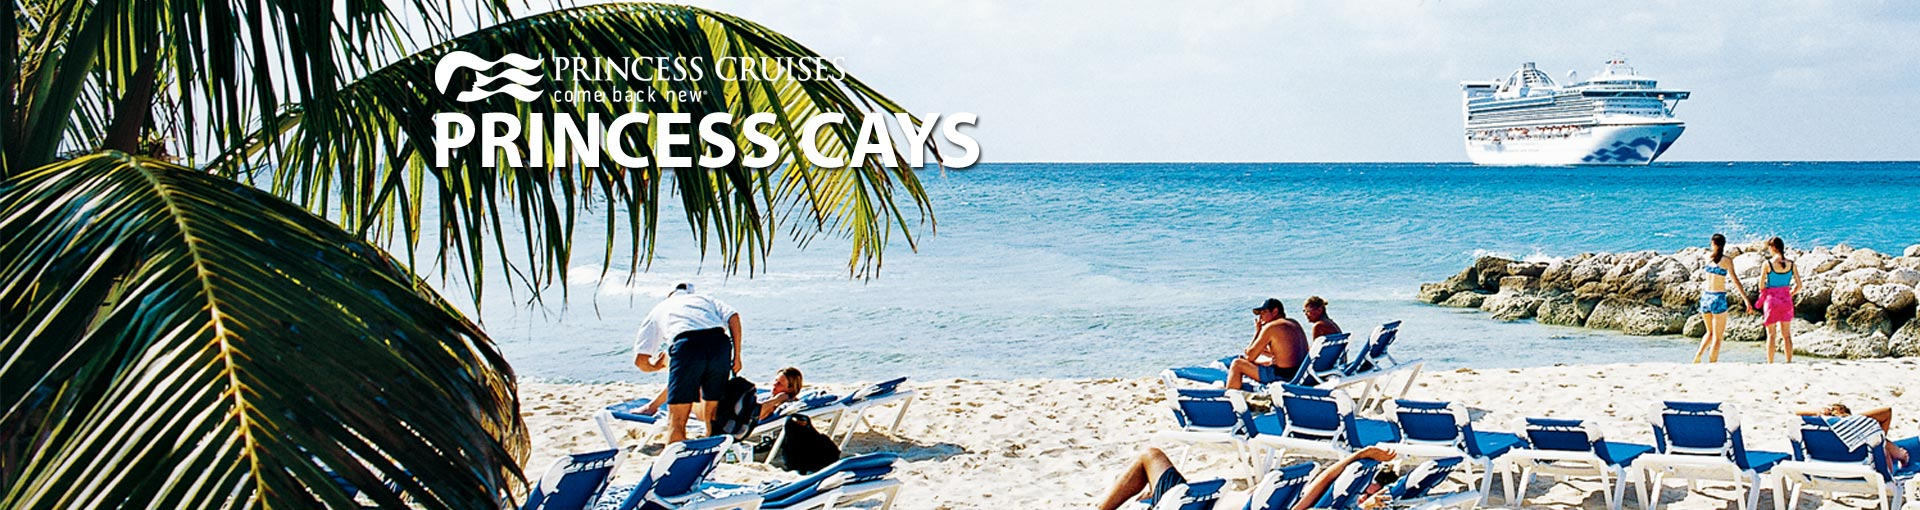 Princess Cruises' Princess Cays